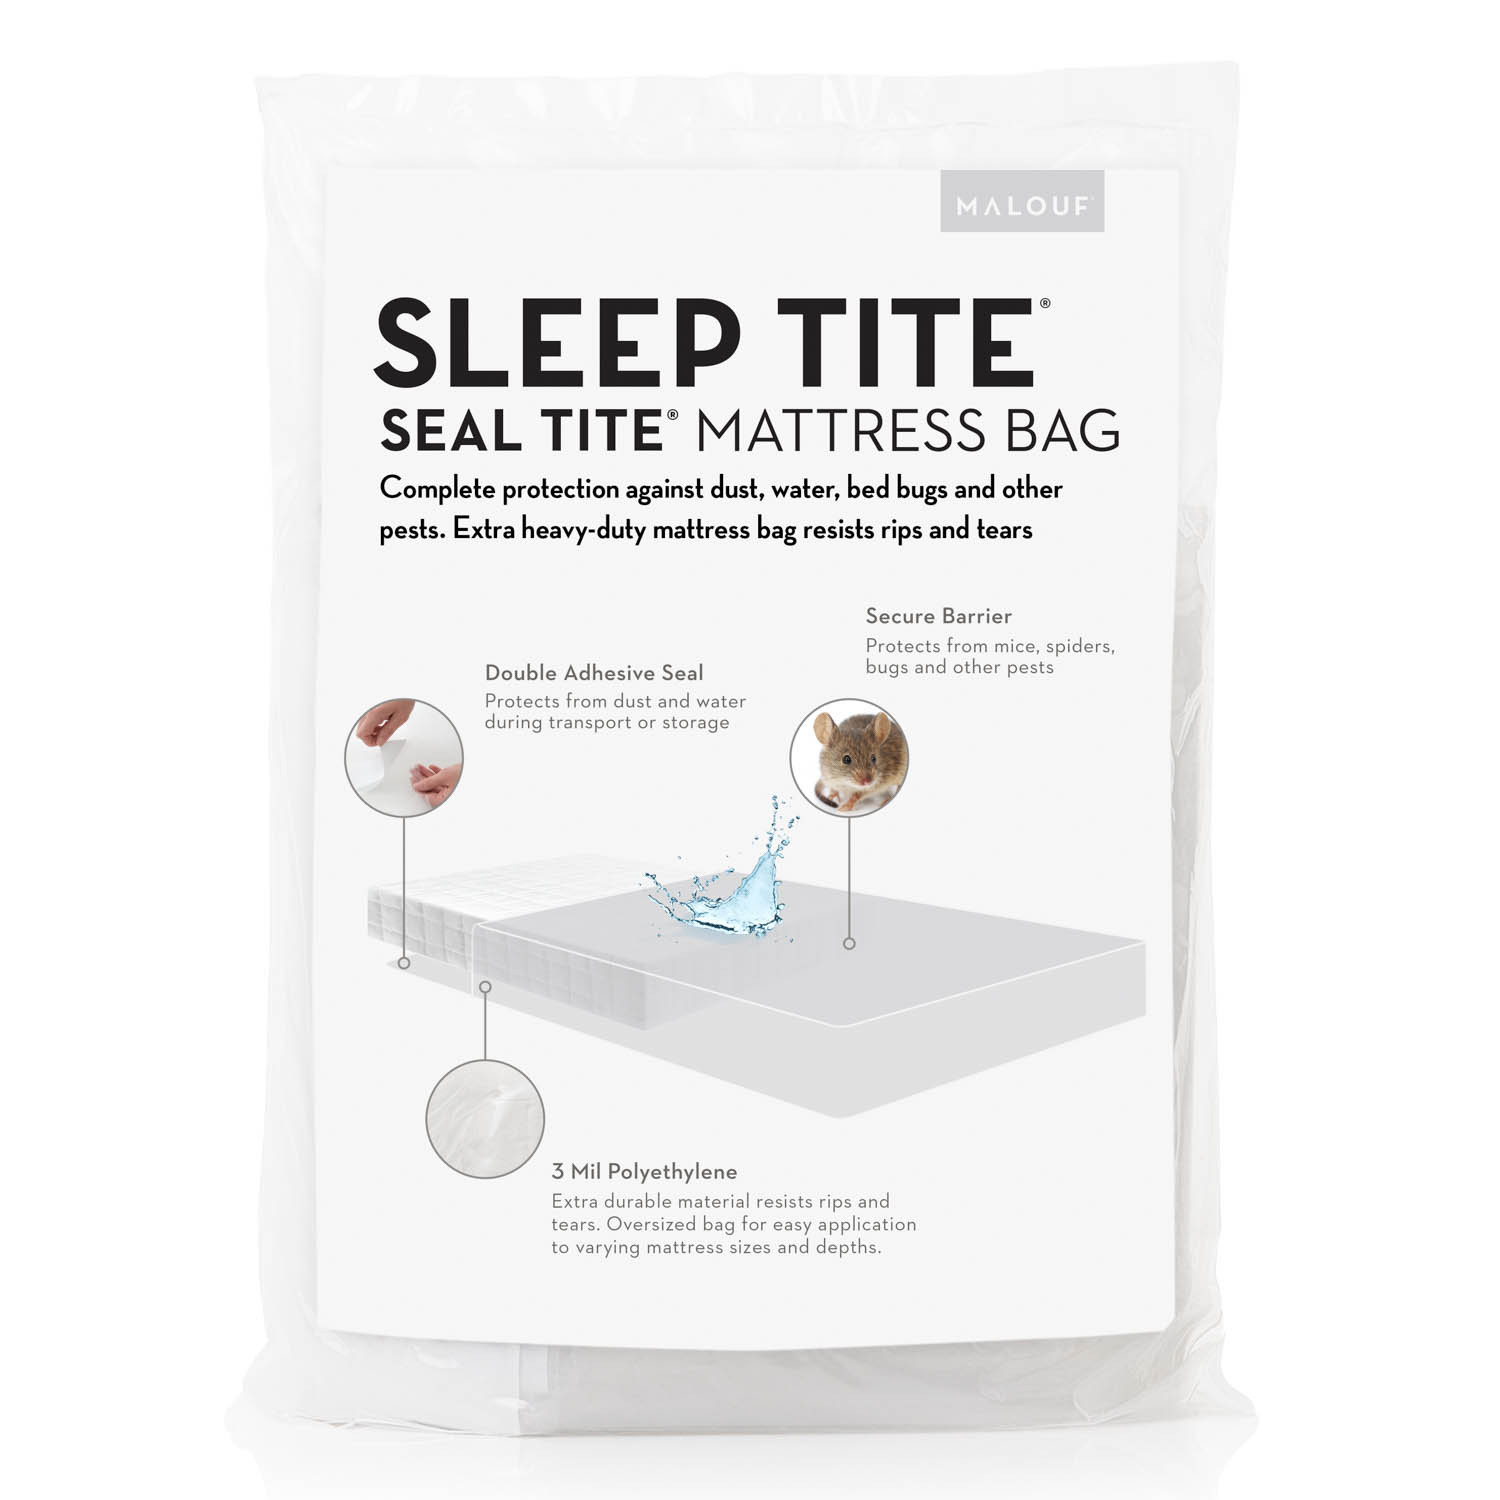 Malouf Sleep Tite Mattress Protector Malouf Sleep Tite Seal Tite Mattress Bag Sleep City